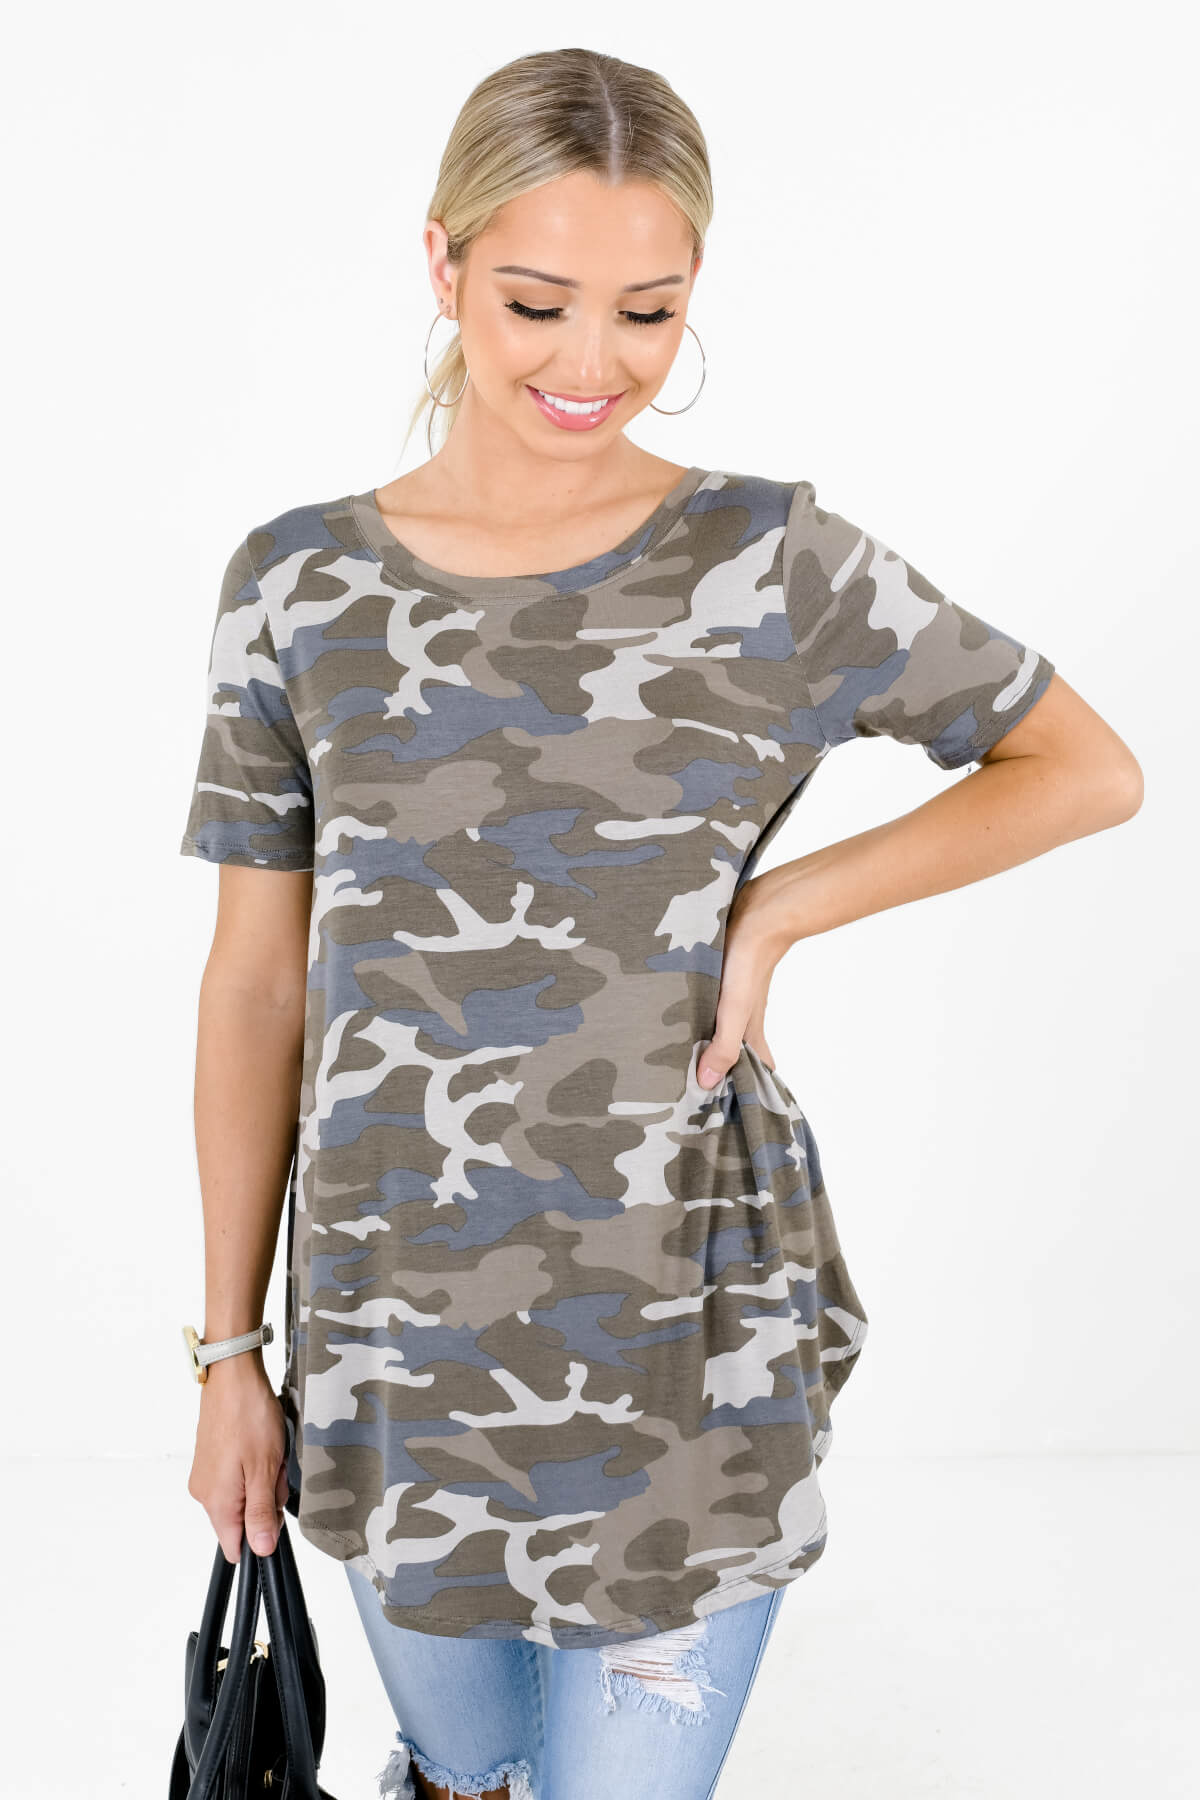 Green and Gray Camo Print Boutique Tops for Women